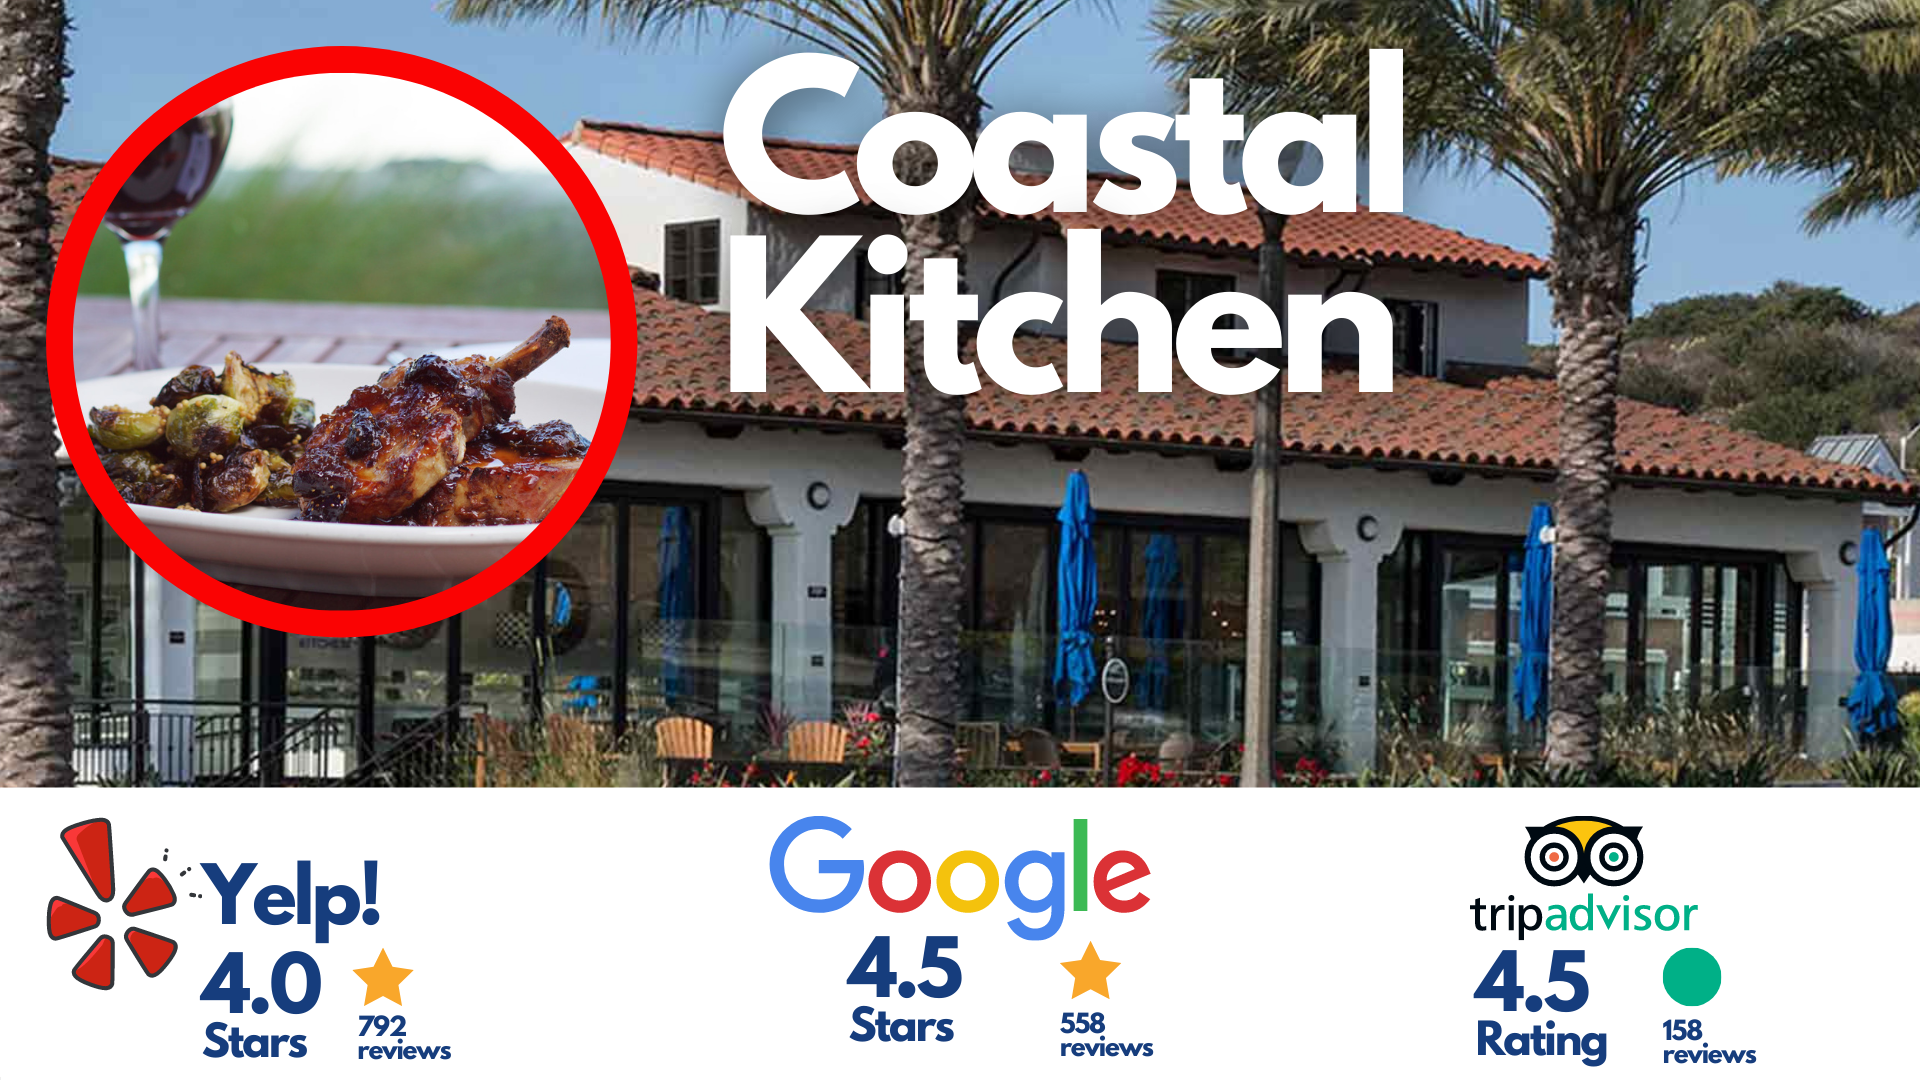 Coastal Kitchen, Dana Point, California (picture of the restaurant's exterior as well as another circular picture of the food and wine at coastal kitchen plus the restaurant's yelp, google and tripadvisor ratings